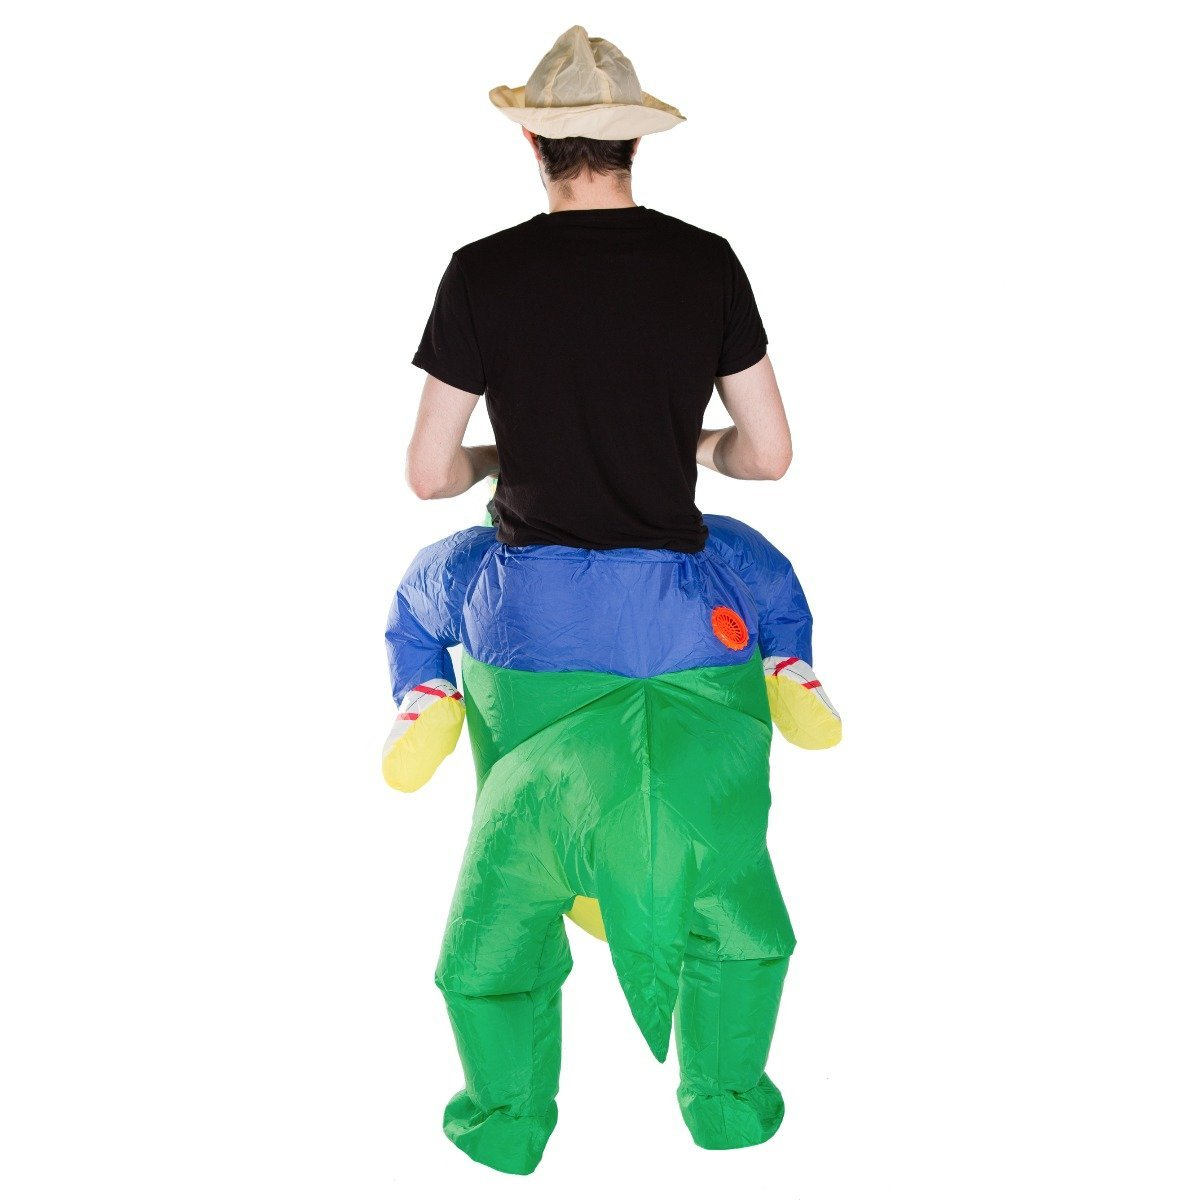 Bodysocks - Inflatable Dinosaur Costume